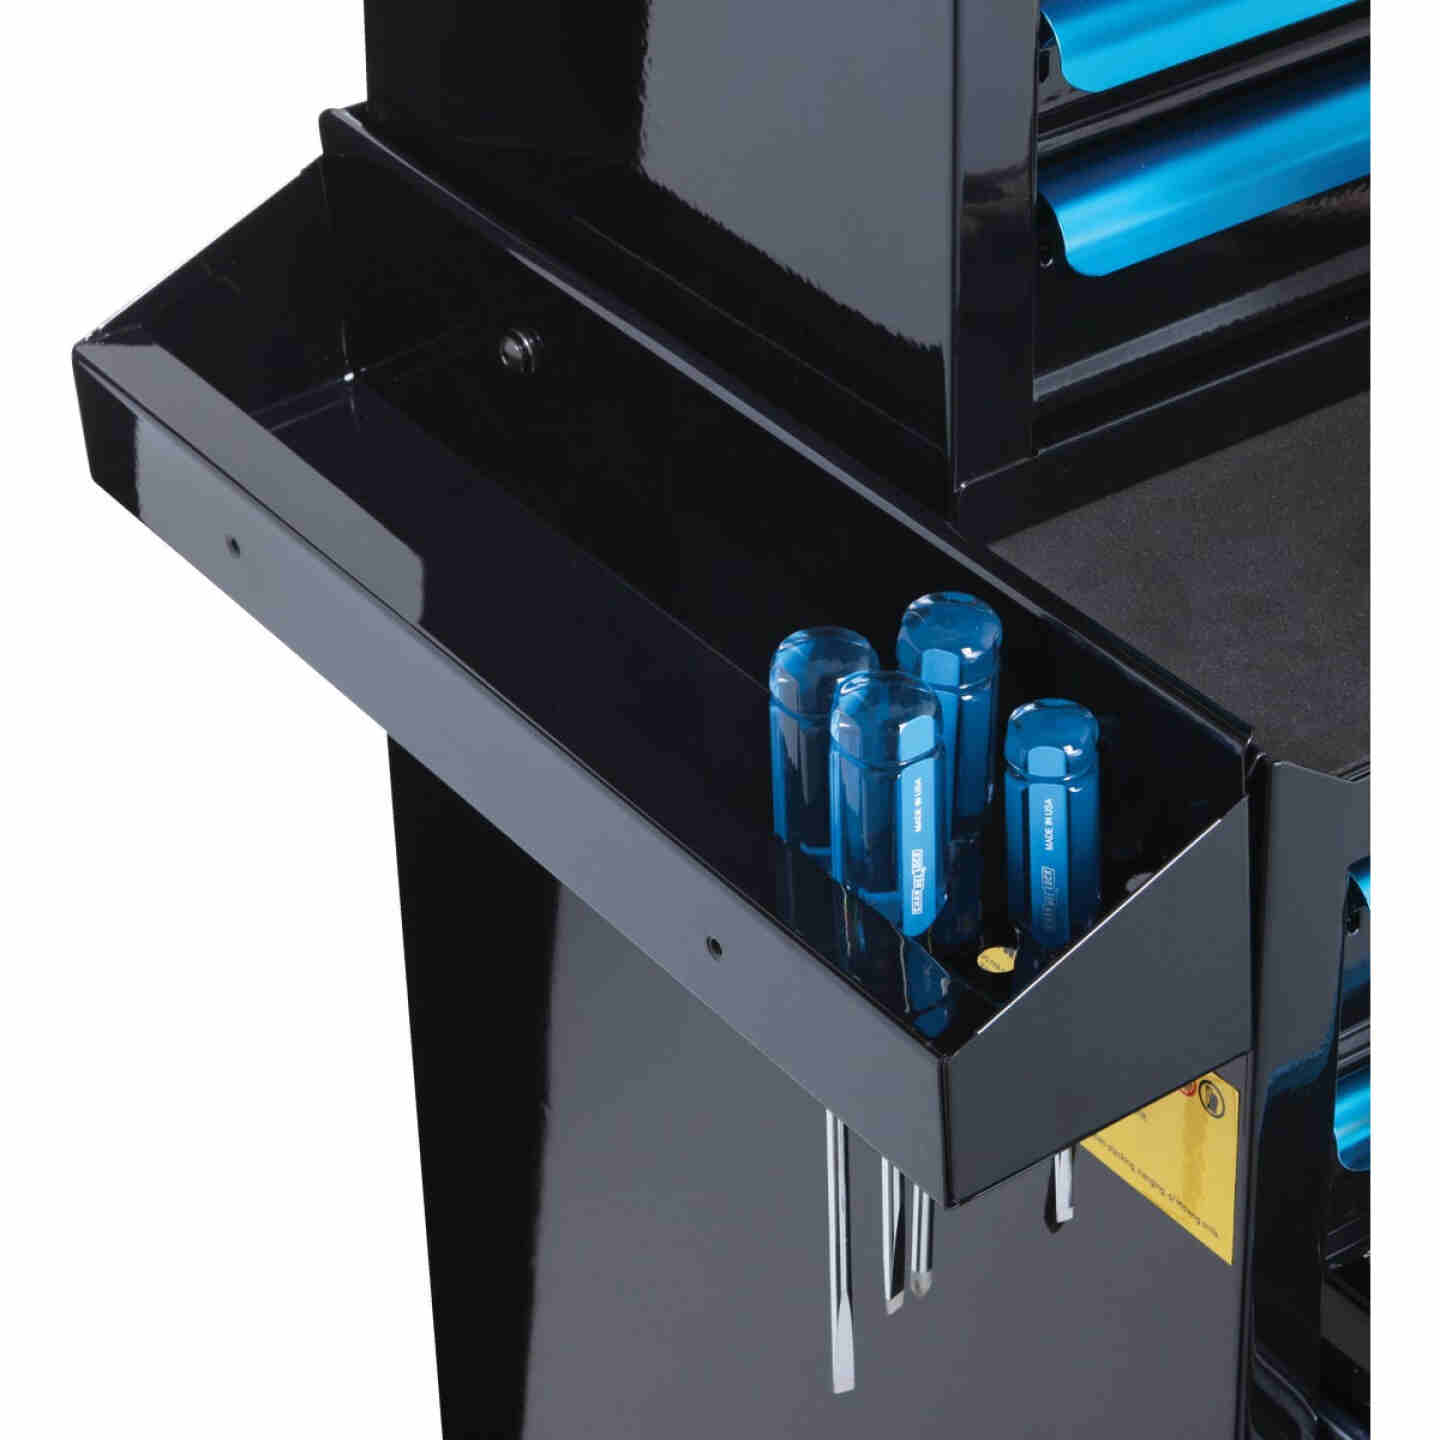 Channellock 26 In. 5-Drawer Tool Roller Cabinet Image 7